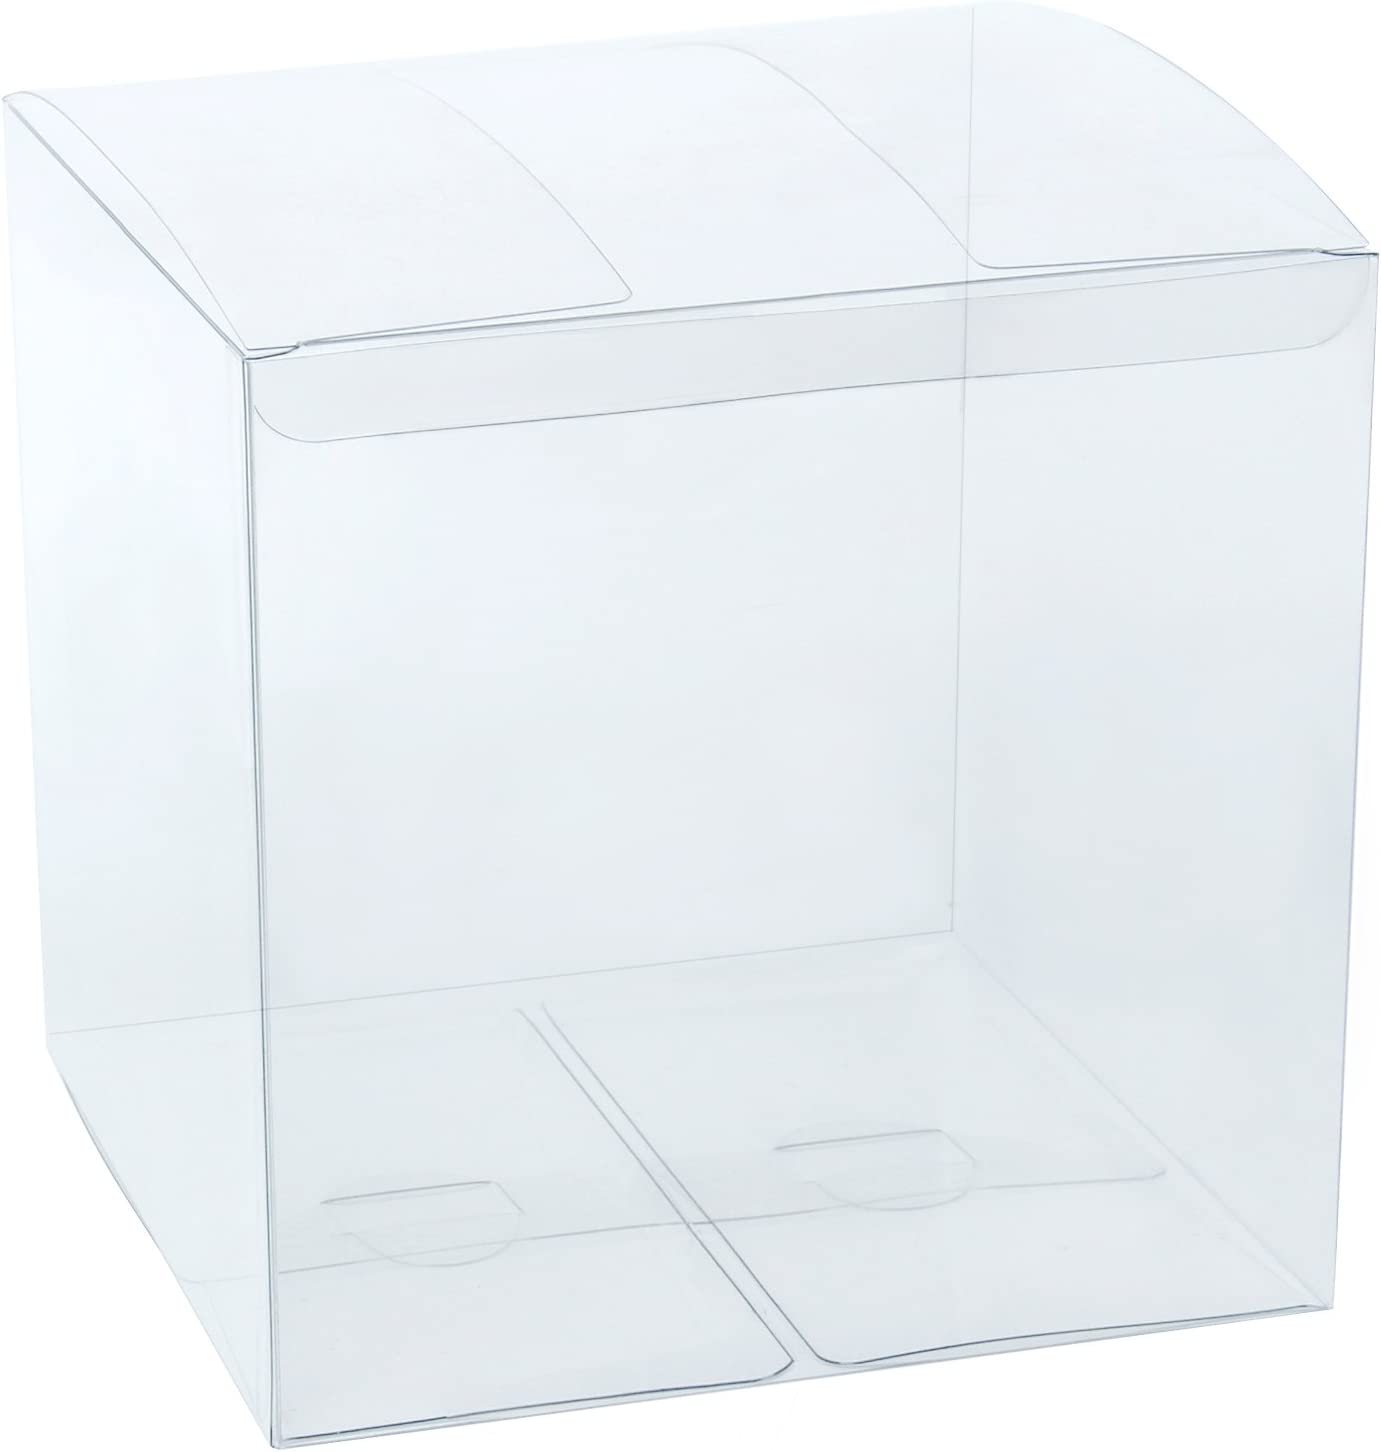 """LaRibbons 20Pcs PET Clear Box, Transparent Boxes, Candy Box, Clear Gift Boxes for Wedding, Party and Baby Shower Favors, 6"""" L x 6"""" W x 6"""" H"""